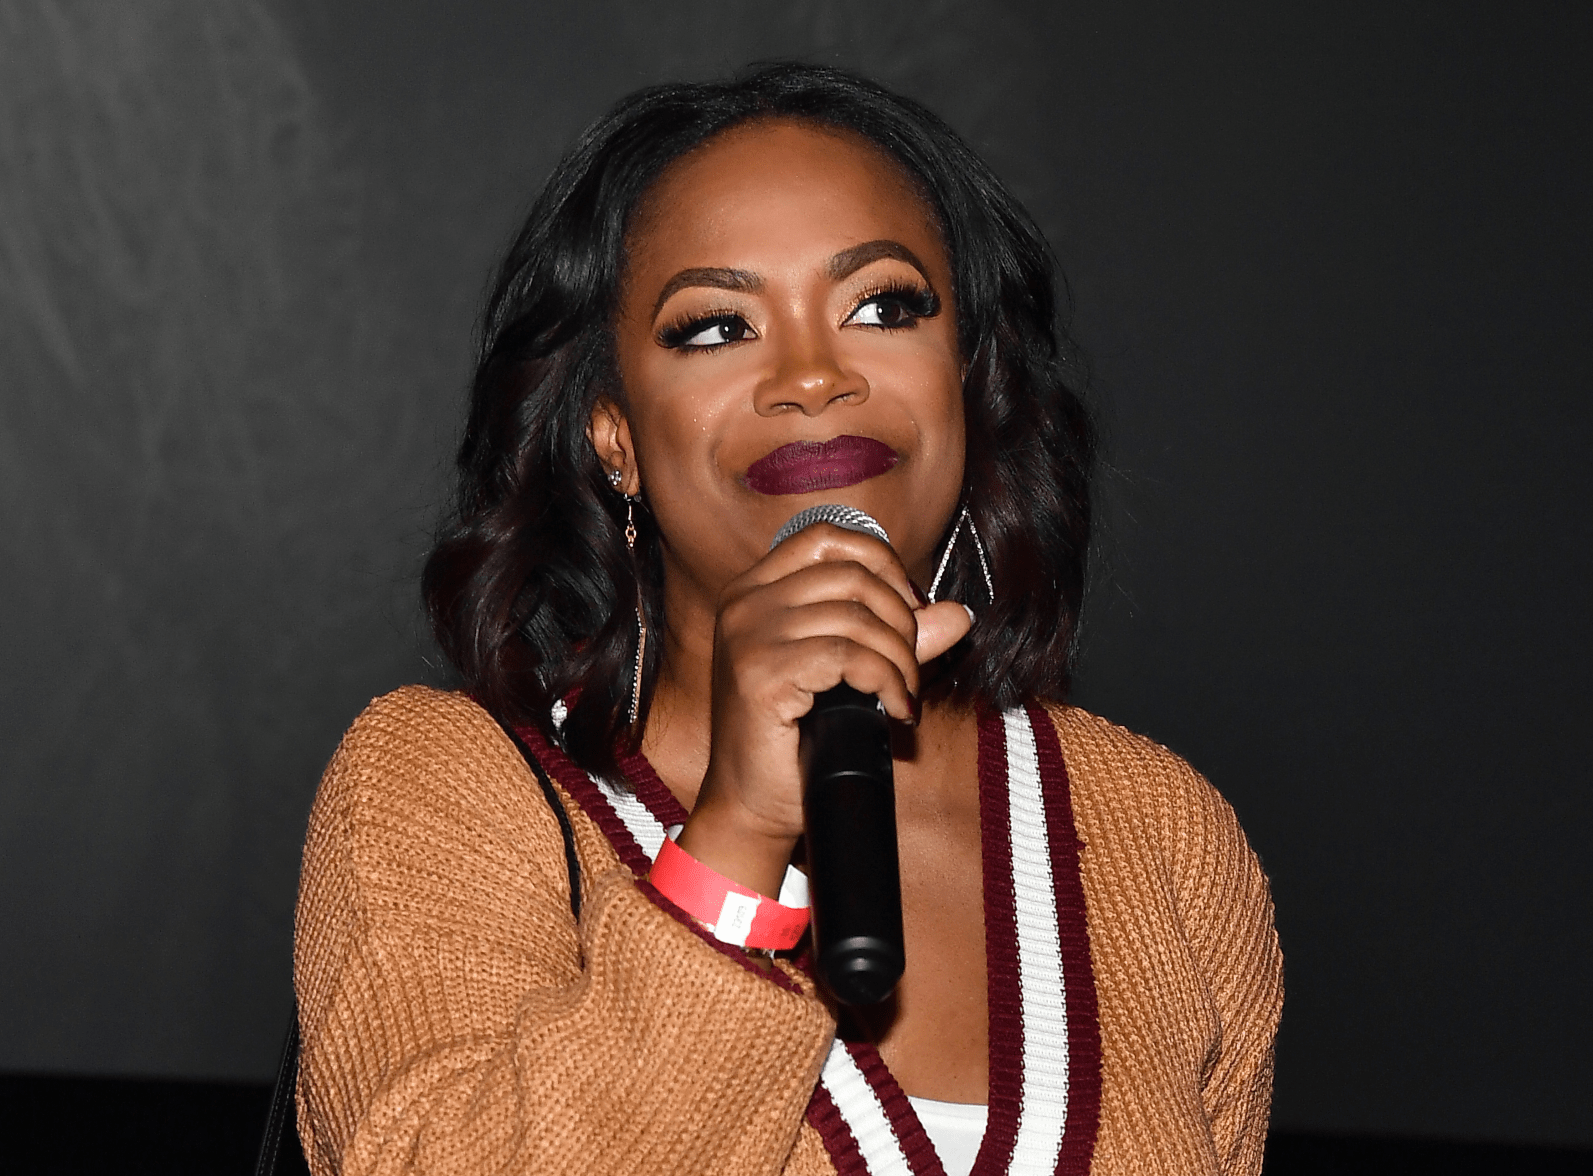 Kandi Burruss Shares Another Throwback Song On Her Social Media And Fans Cannot Have Enough Of The Kandi Koated Album